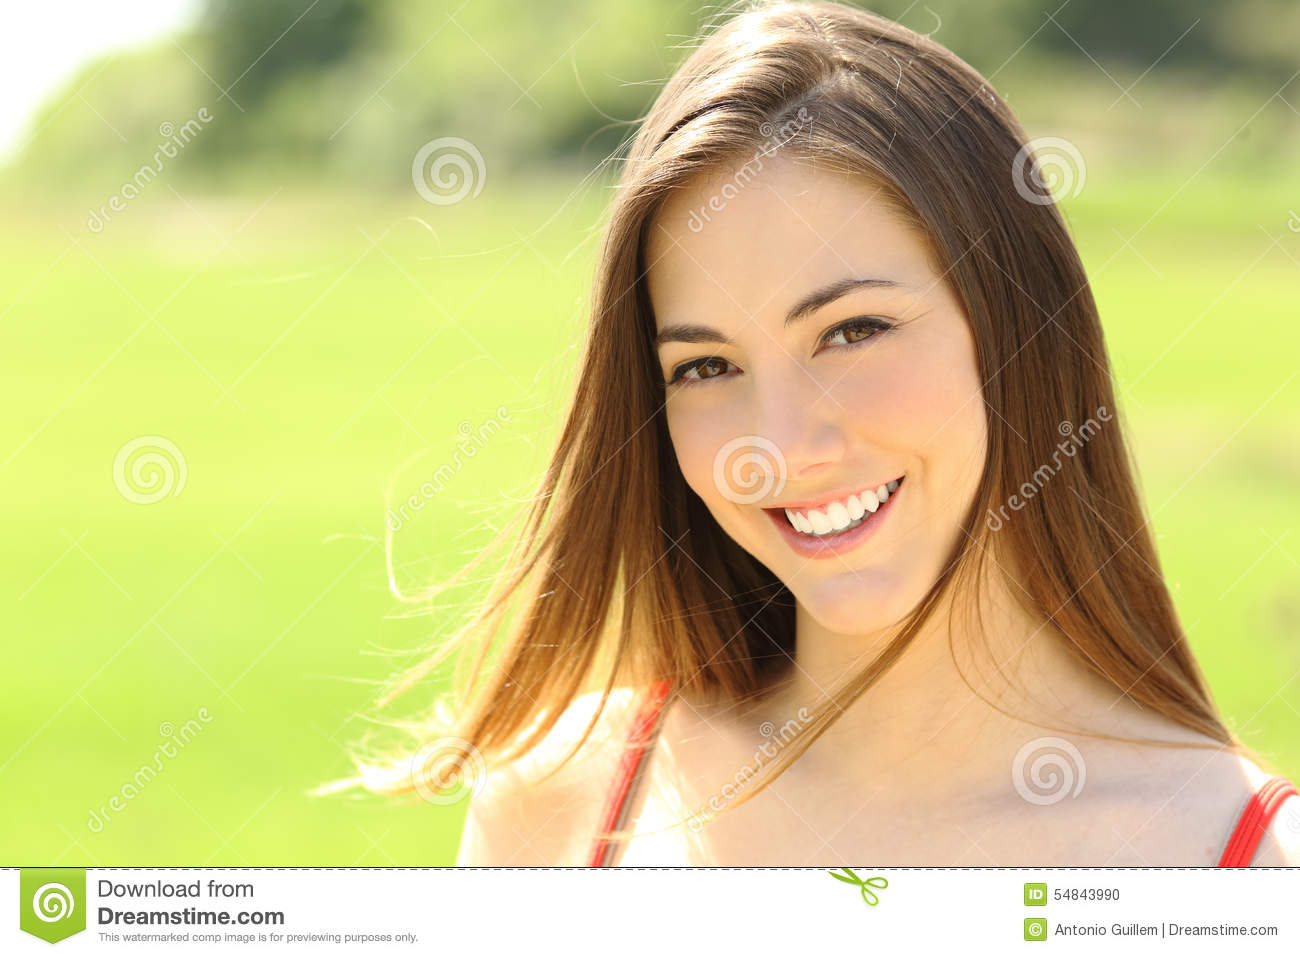 Woman With Perfect Teeth And Smile Looking You Stock Photo ...